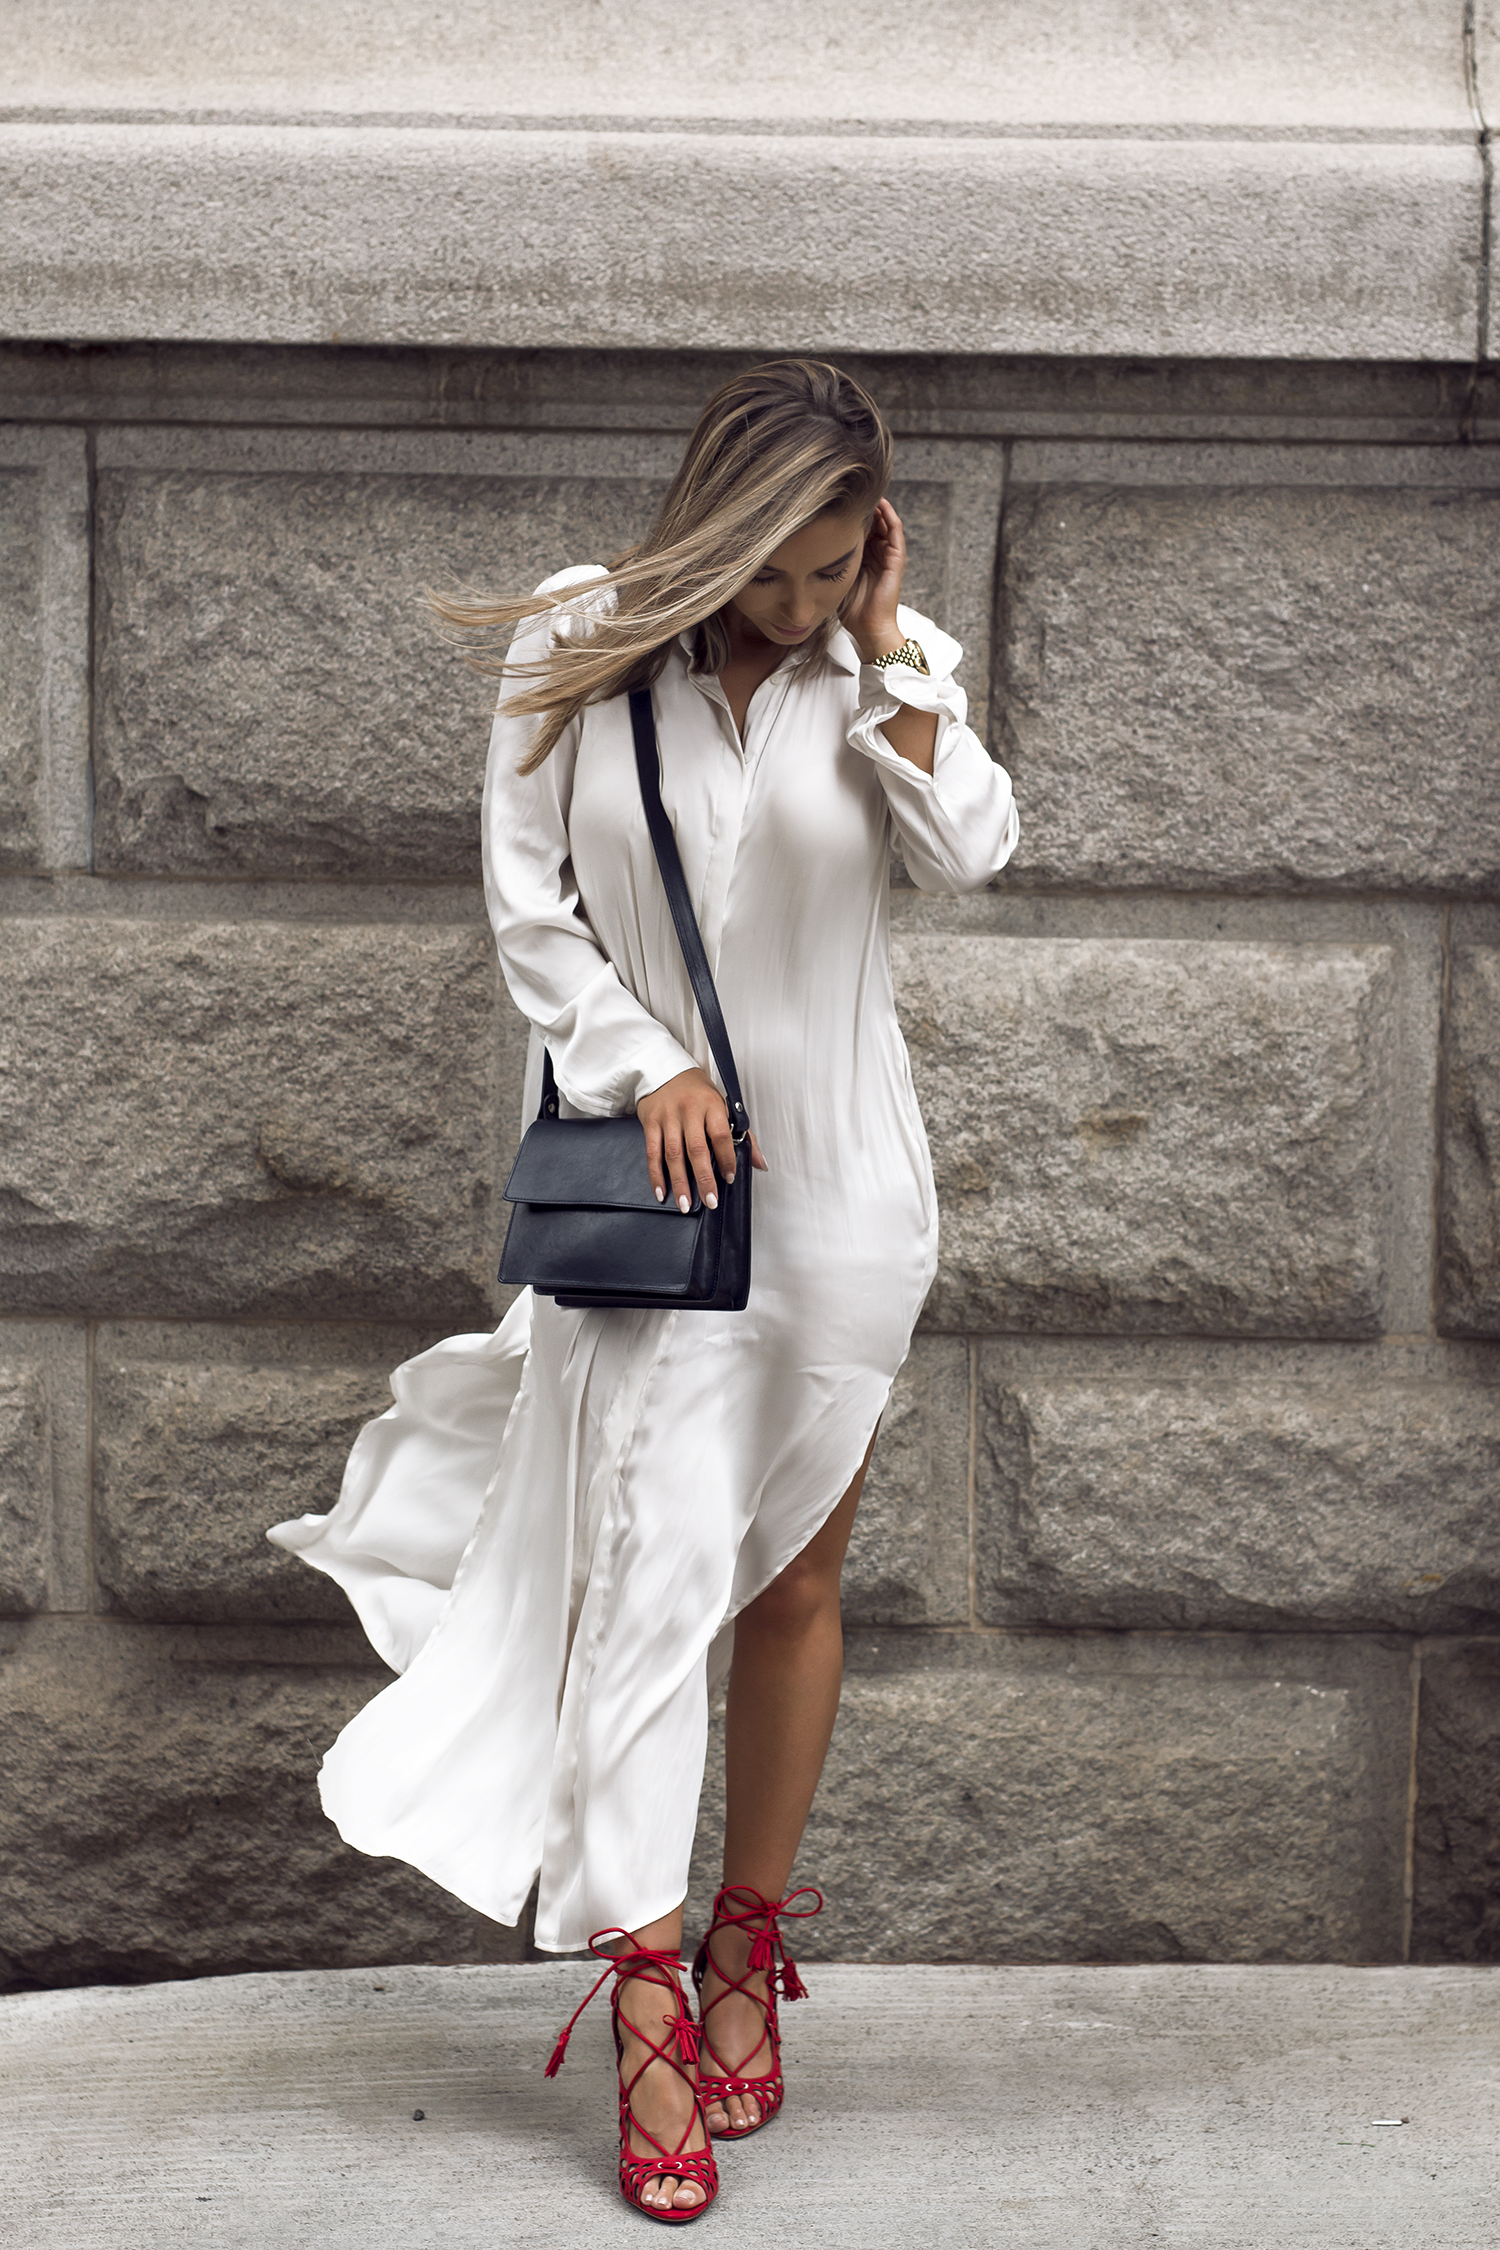 807f7f95 Whoever said the shirt dress wasn't glamorous was absolutely wrong! Take  style inspiration